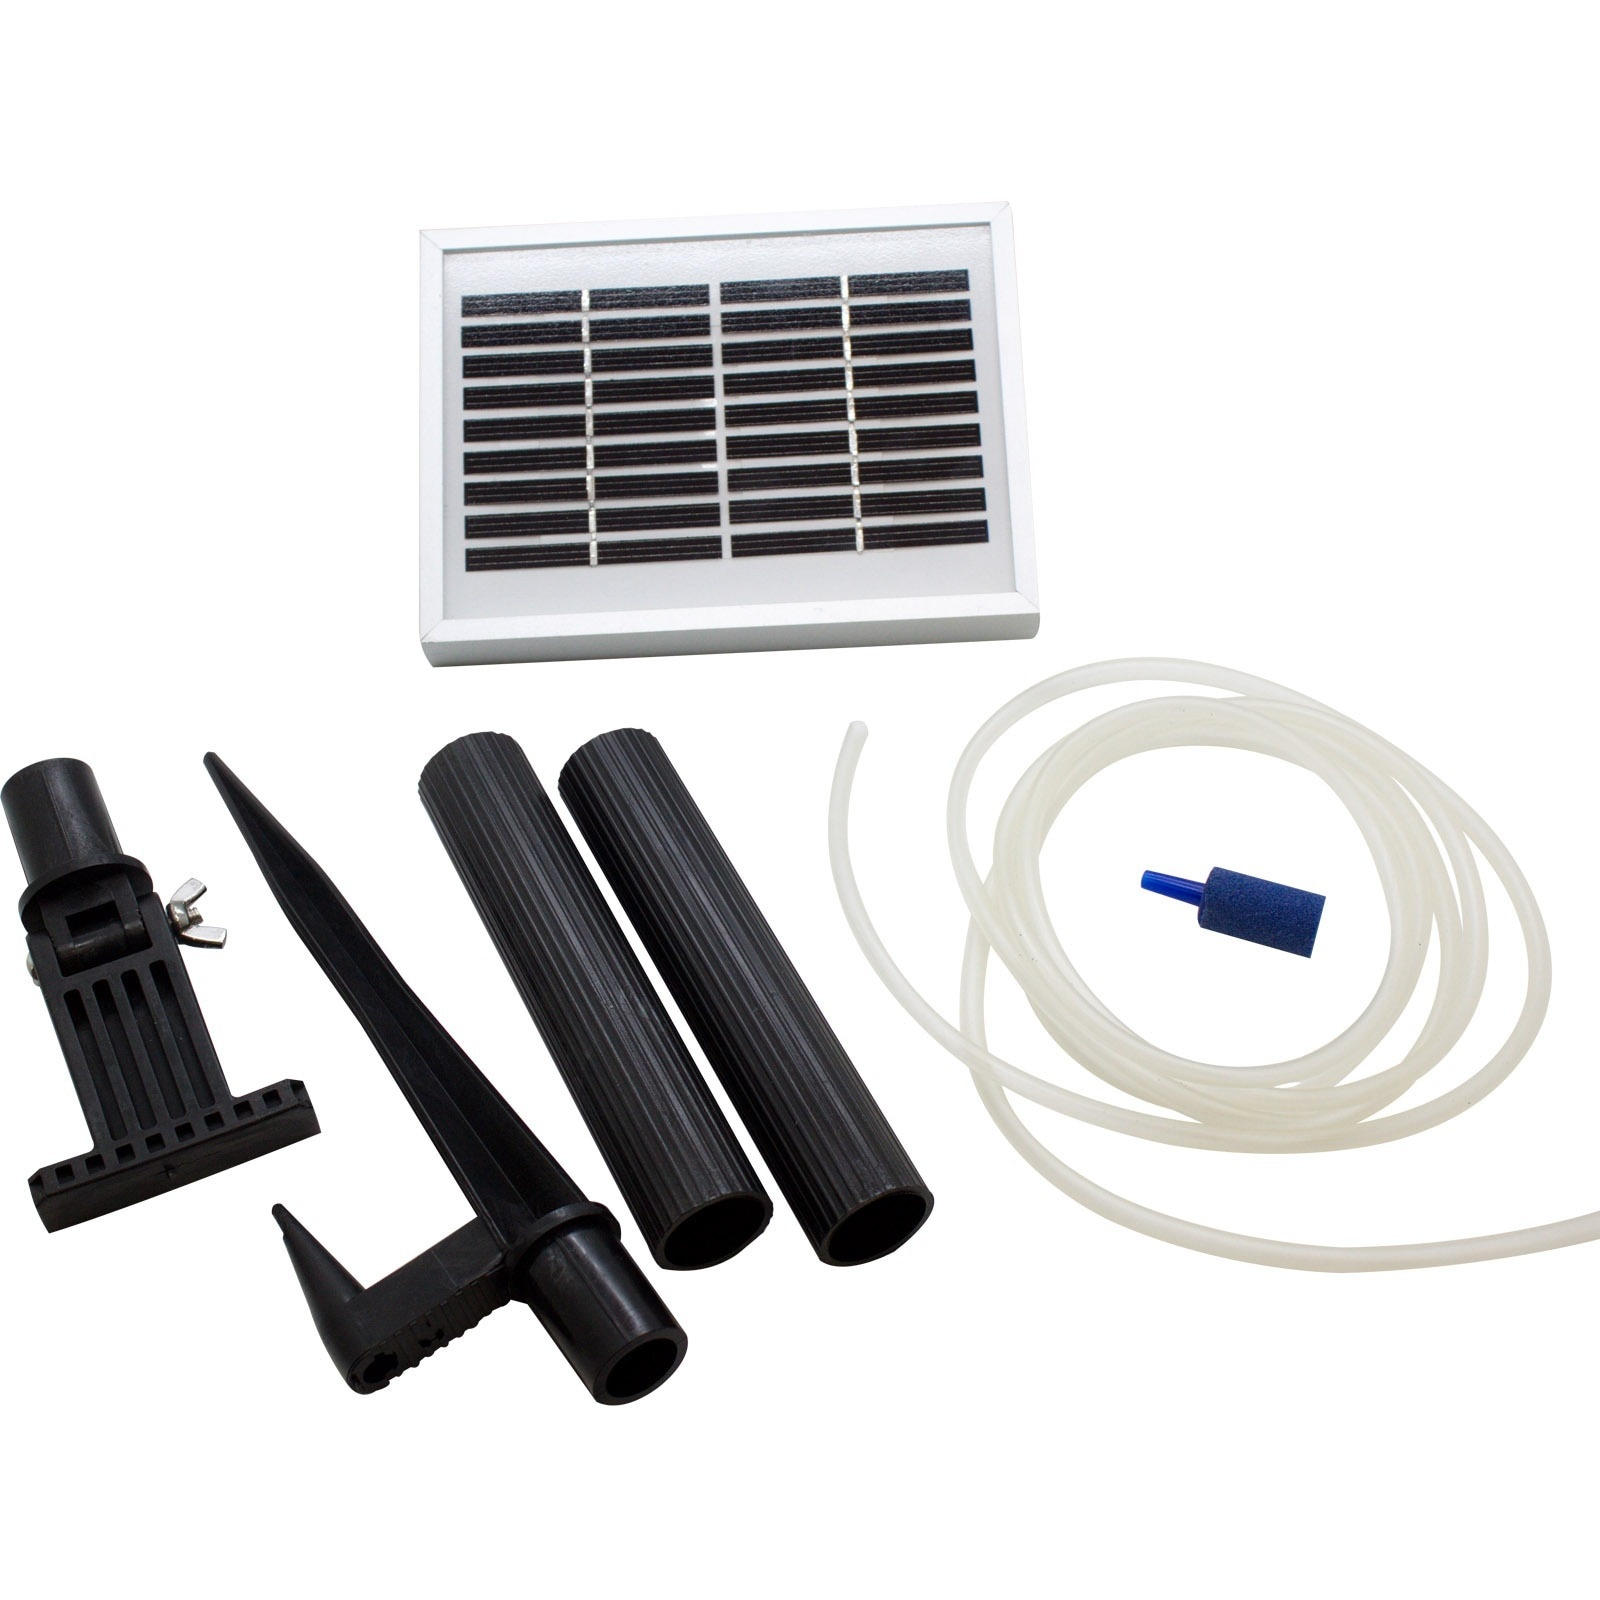 OEM Solar Power Oxygenator Air Pump (Solar Power Oxygenat...